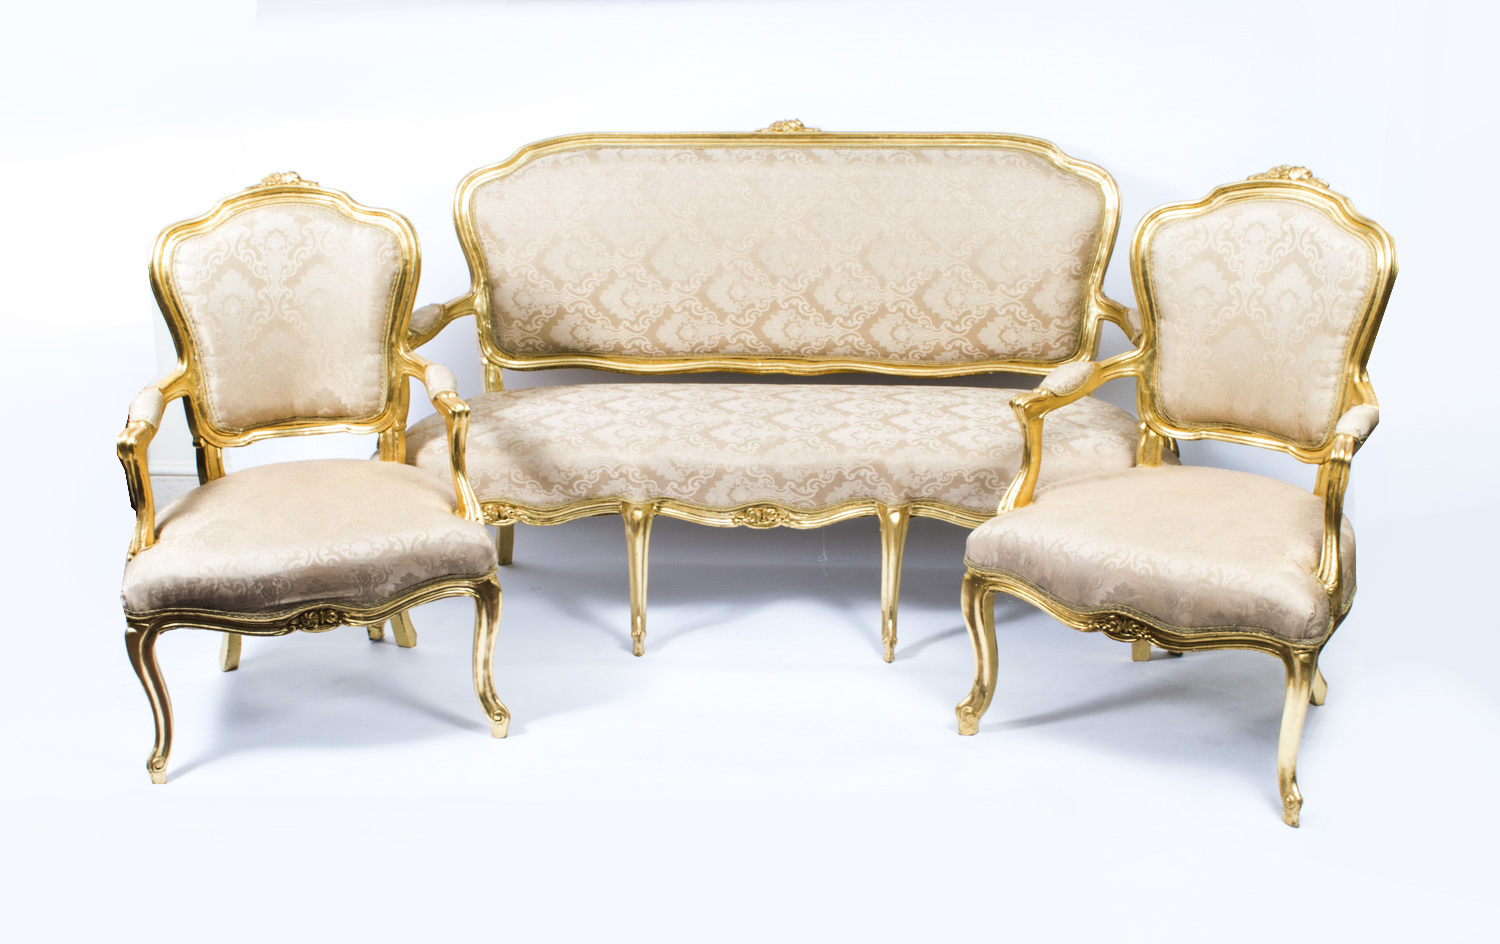 French Louis Xv Style Ref No 07156 Regent Antiques